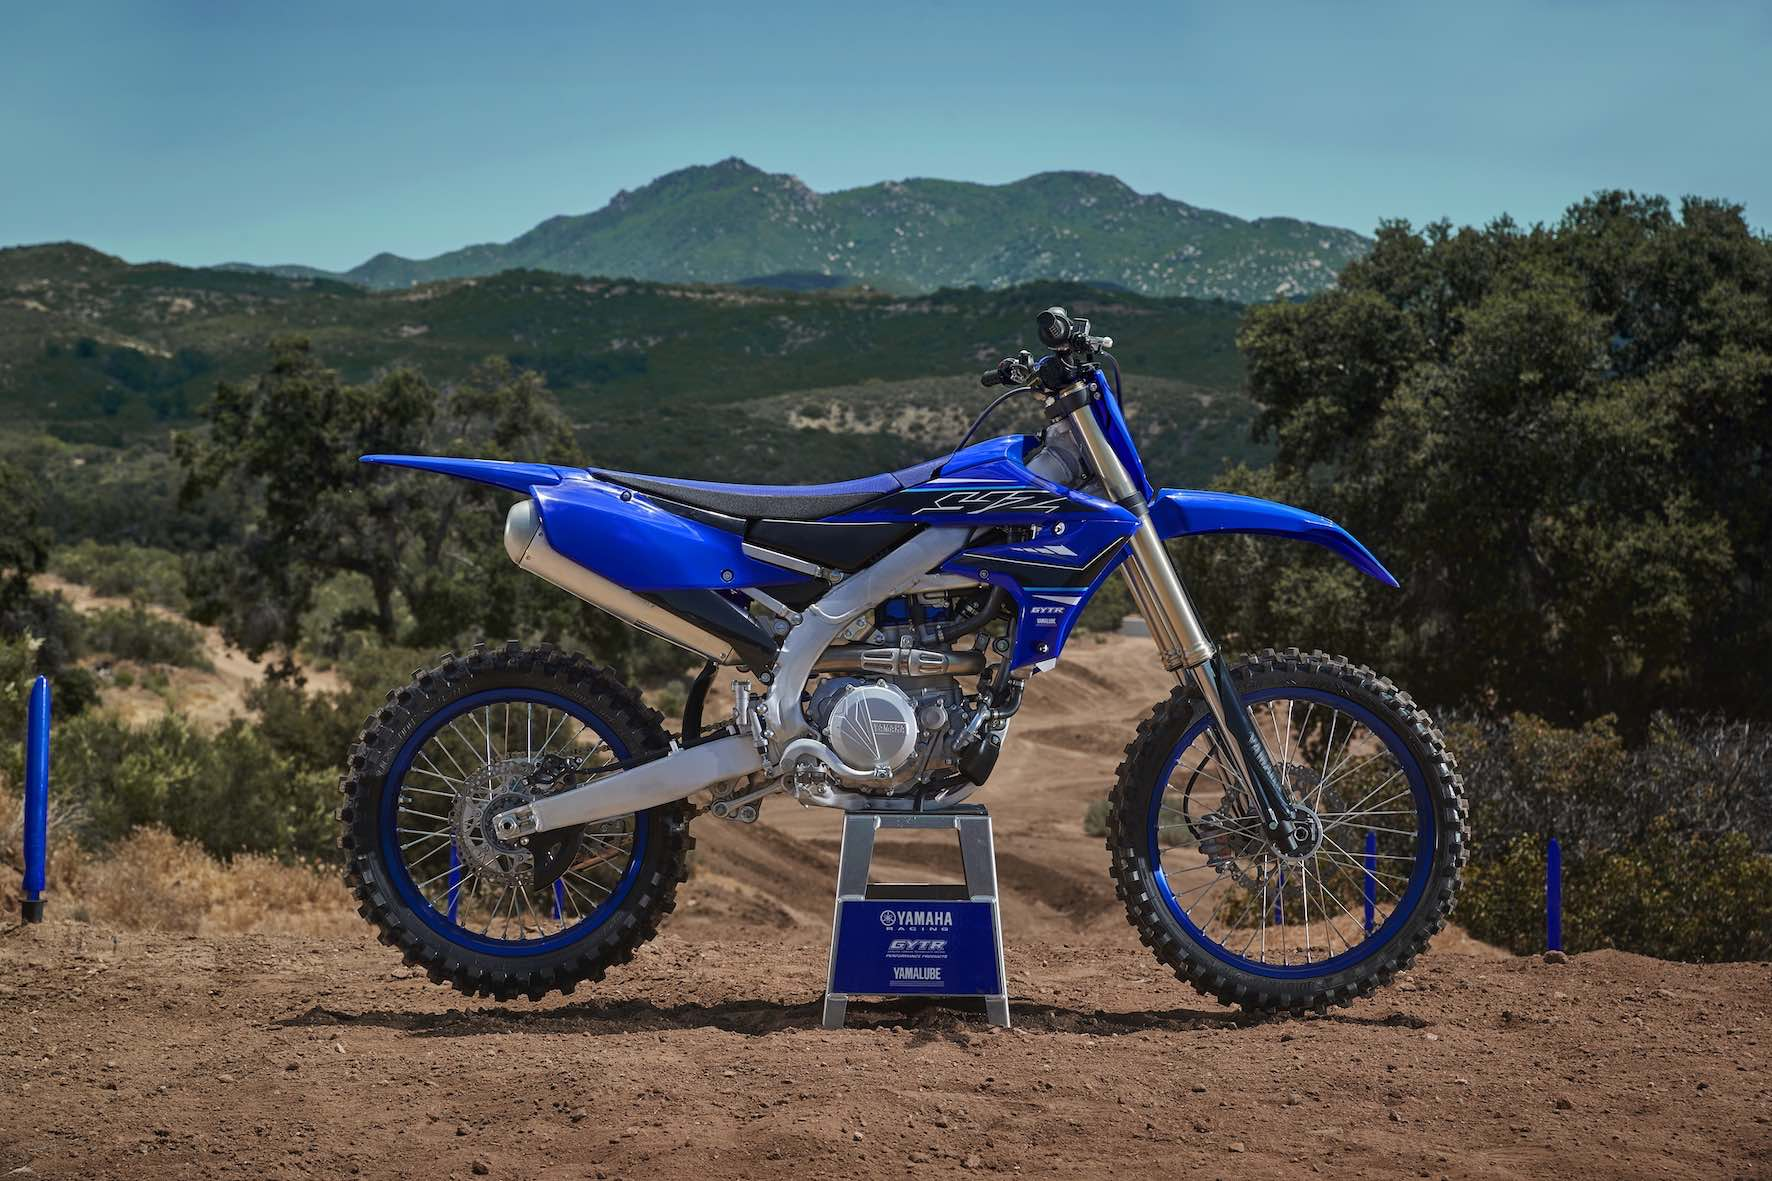 The 2021 Yamaha motocross competition line-up is here